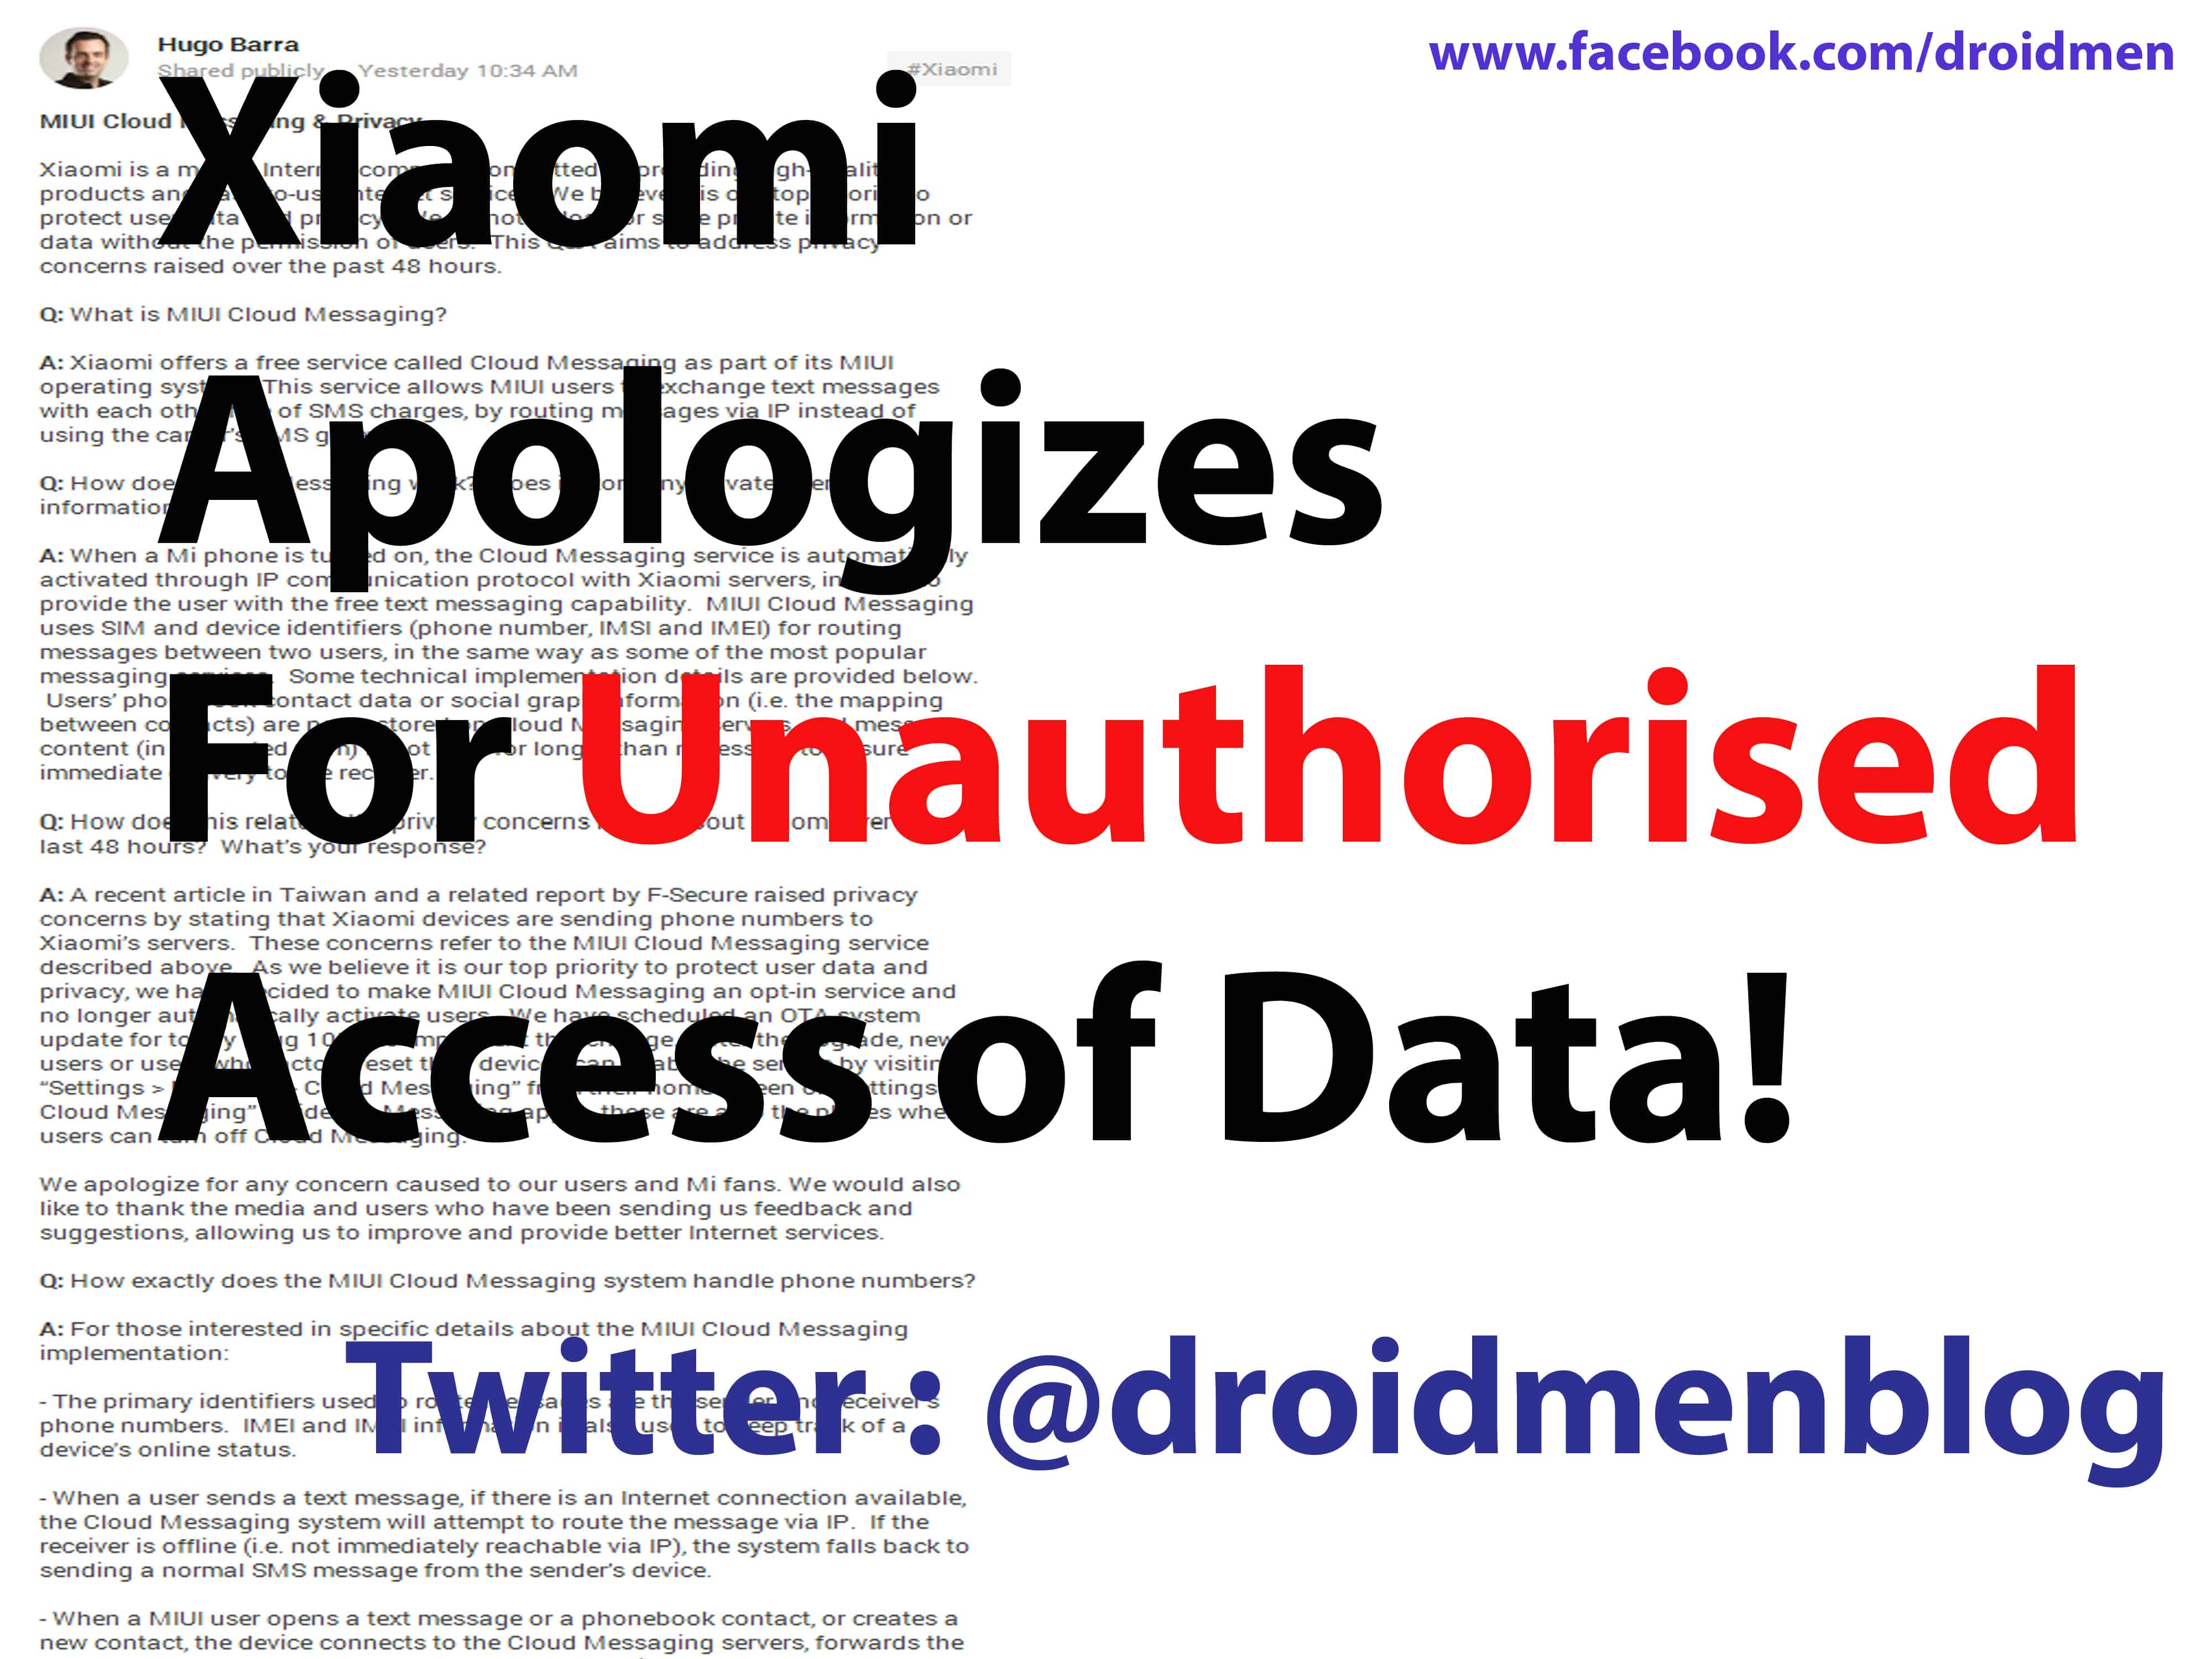 Xiaomi Apologizes for Unauthorized Access of Data 1